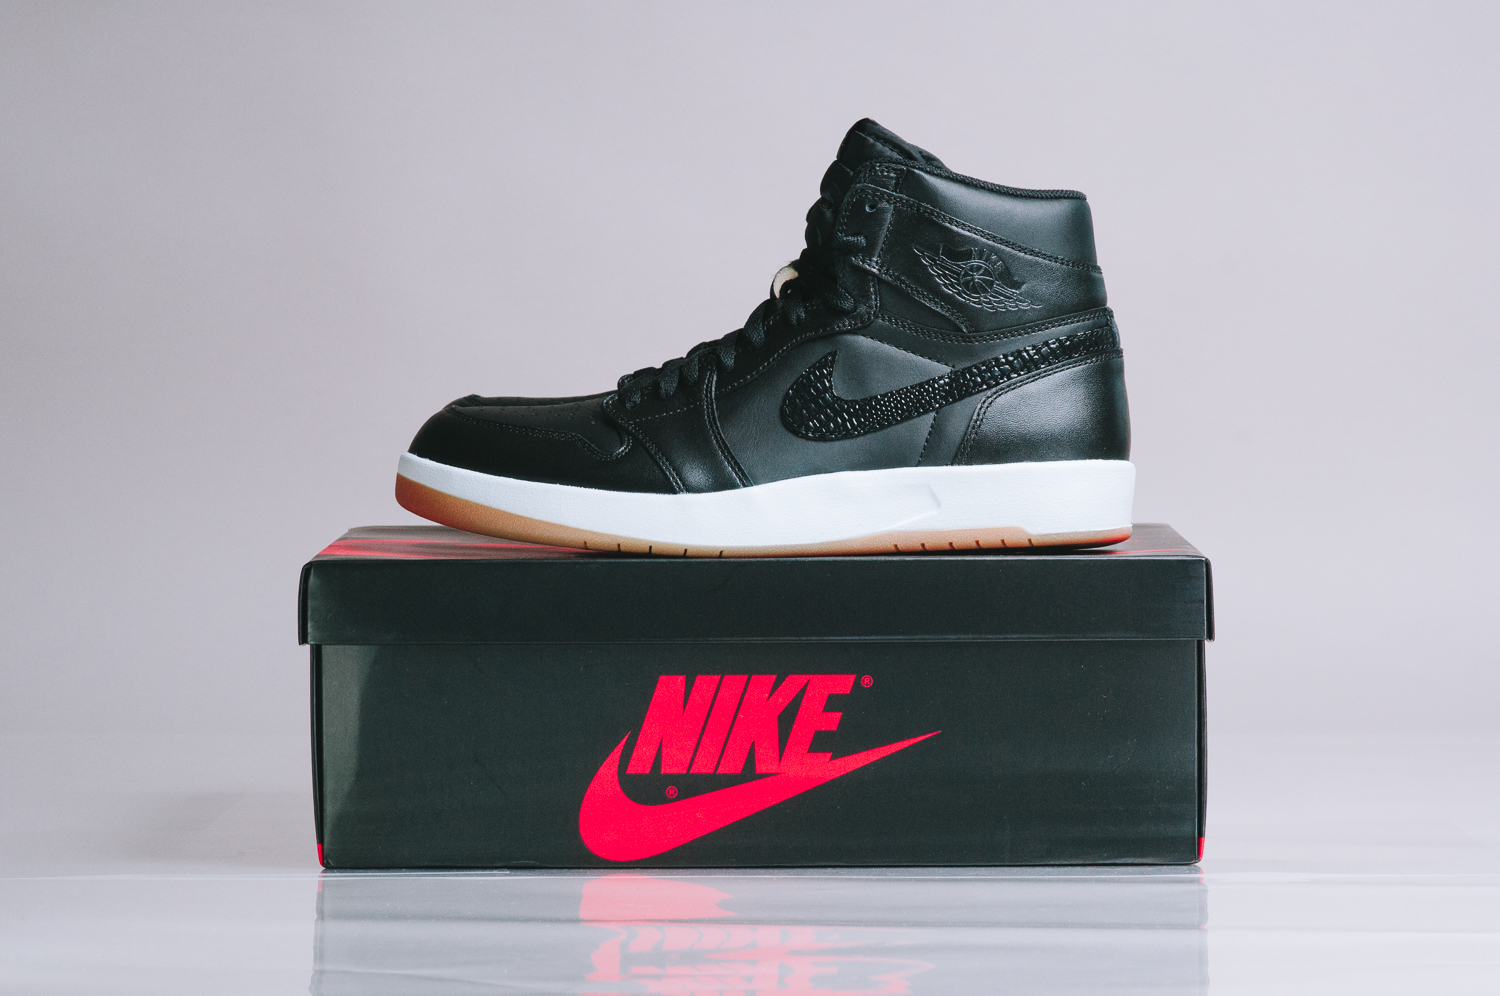 sports shoes 86a08 f831c Air Jordan 1 Retro High The Return Release Date: 09/15/15. Color: Black/Militia  Green-White-Gum Yellow Style #: 768861-008. Price: $150